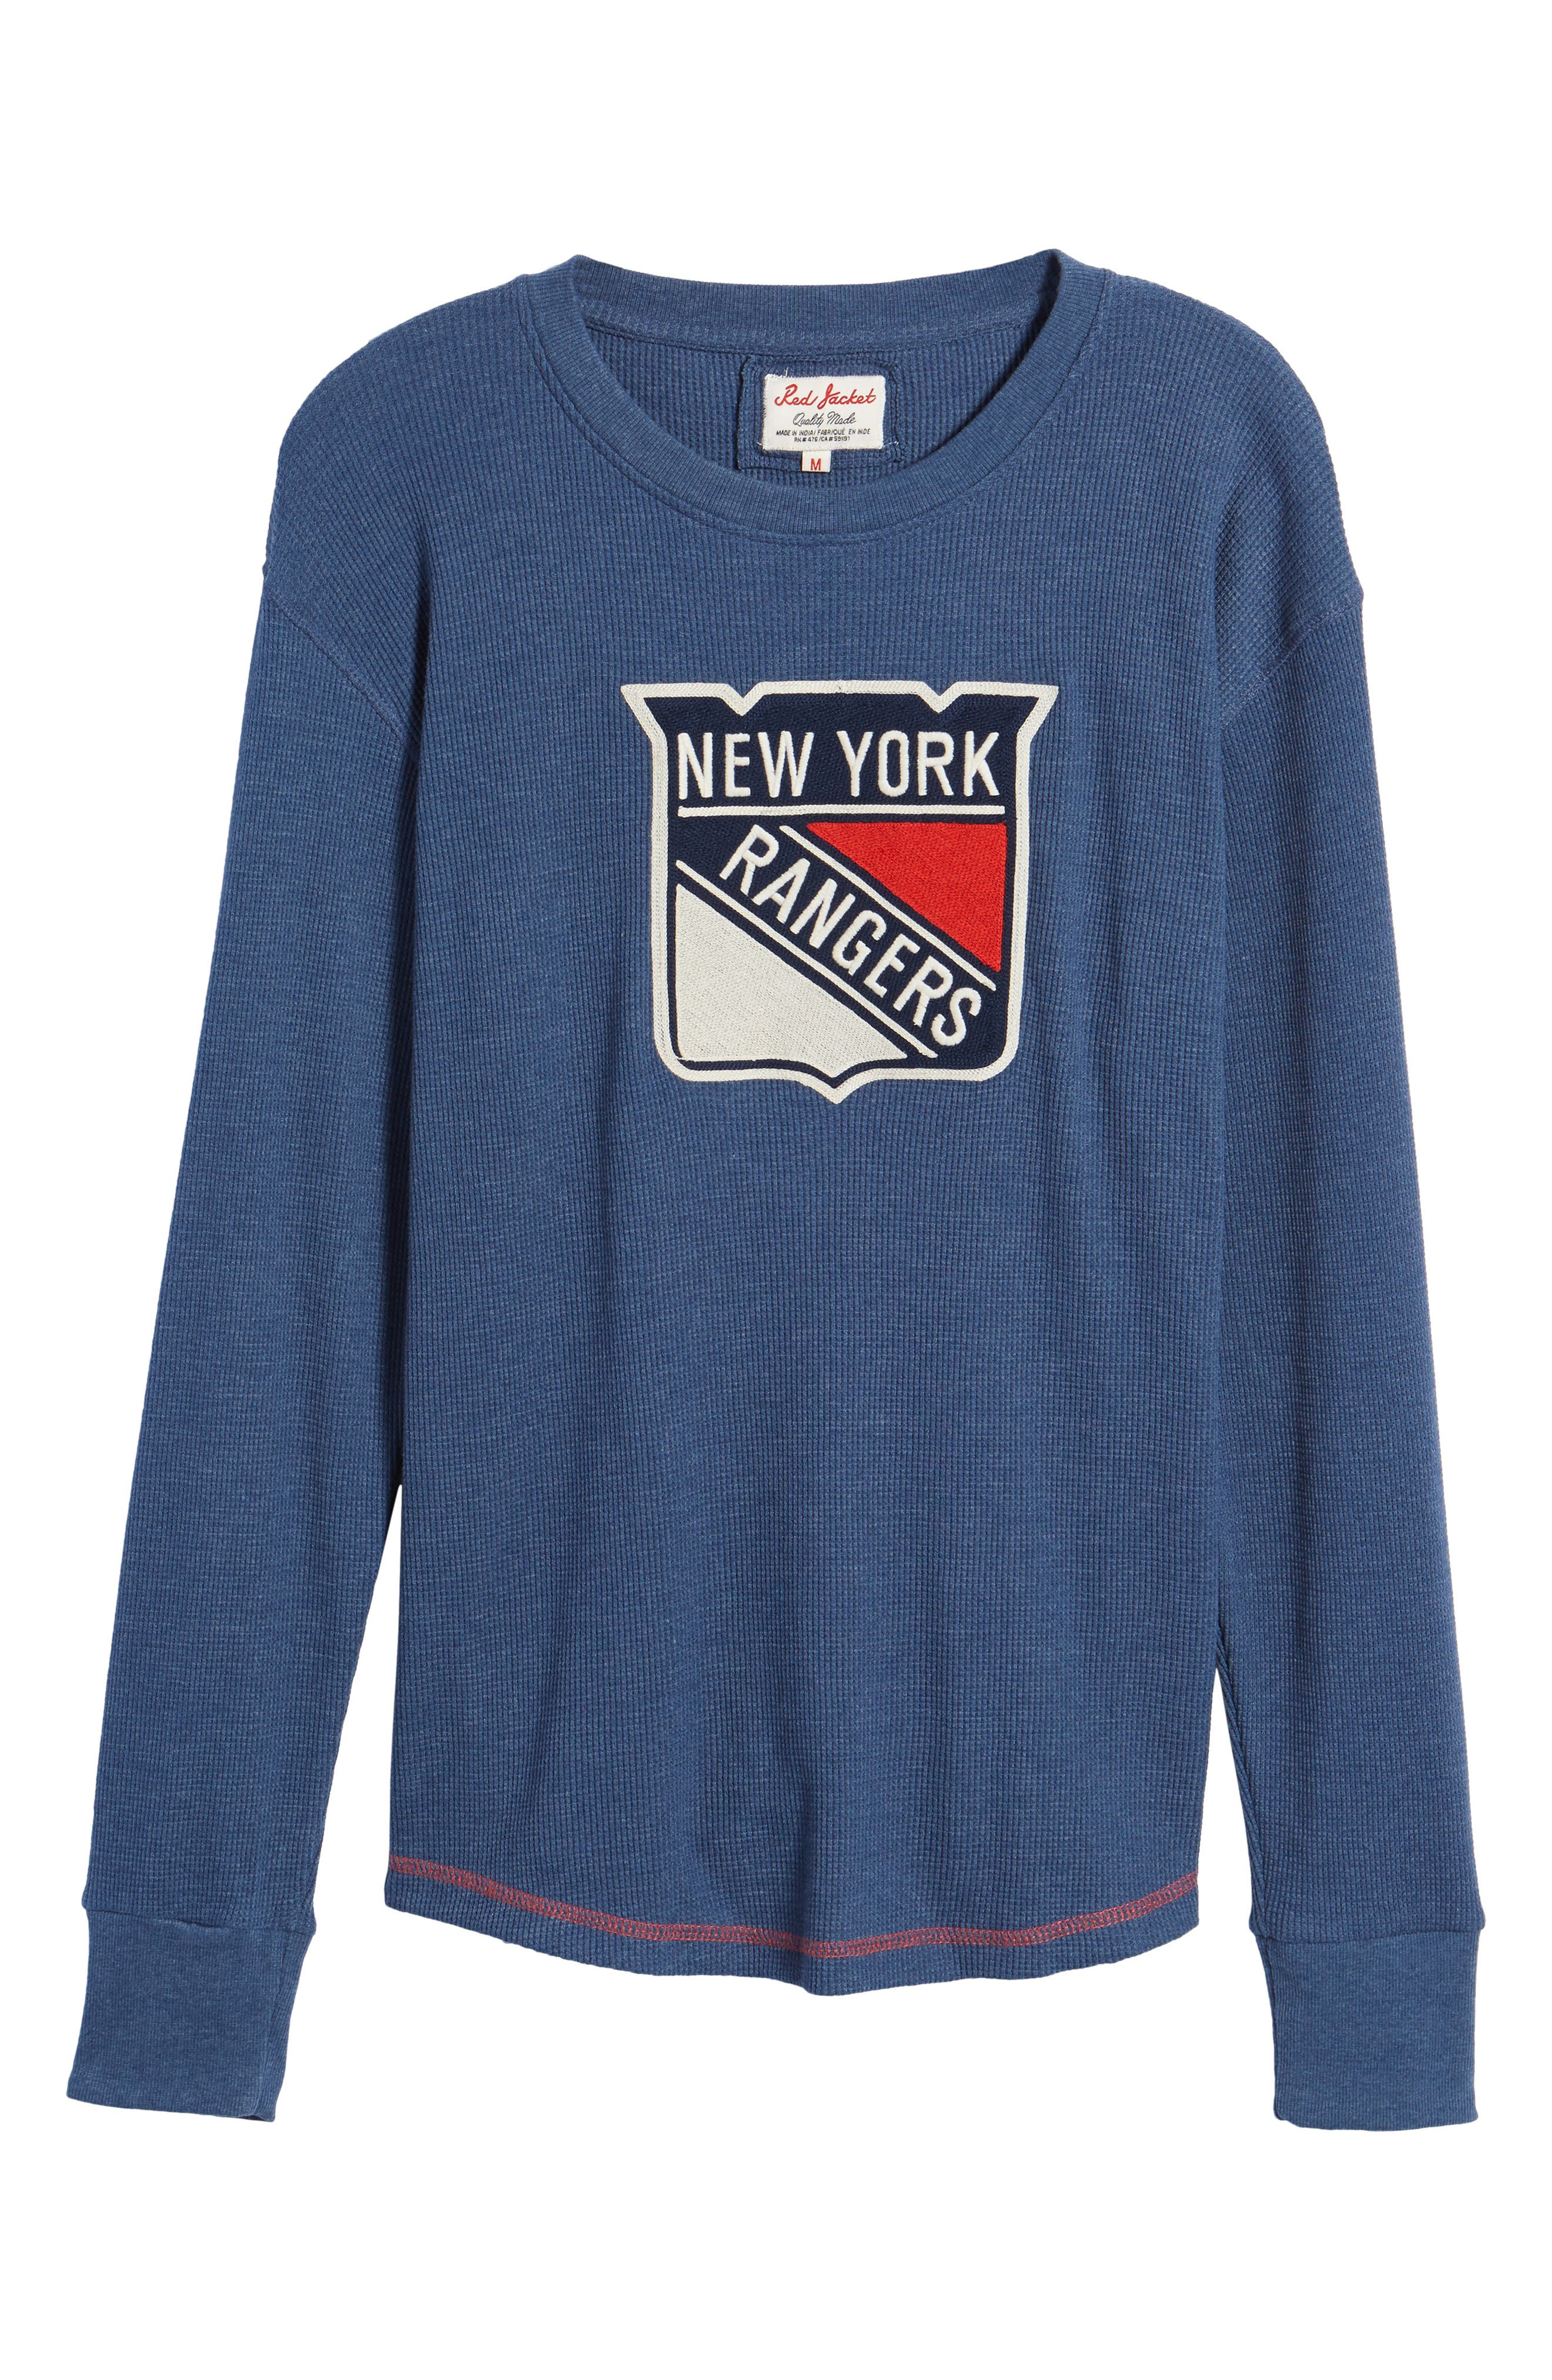 New York Rangers Embroidered Long Sleeve Thermal Shirt,                             Alternate thumbnail 6, color,                             410